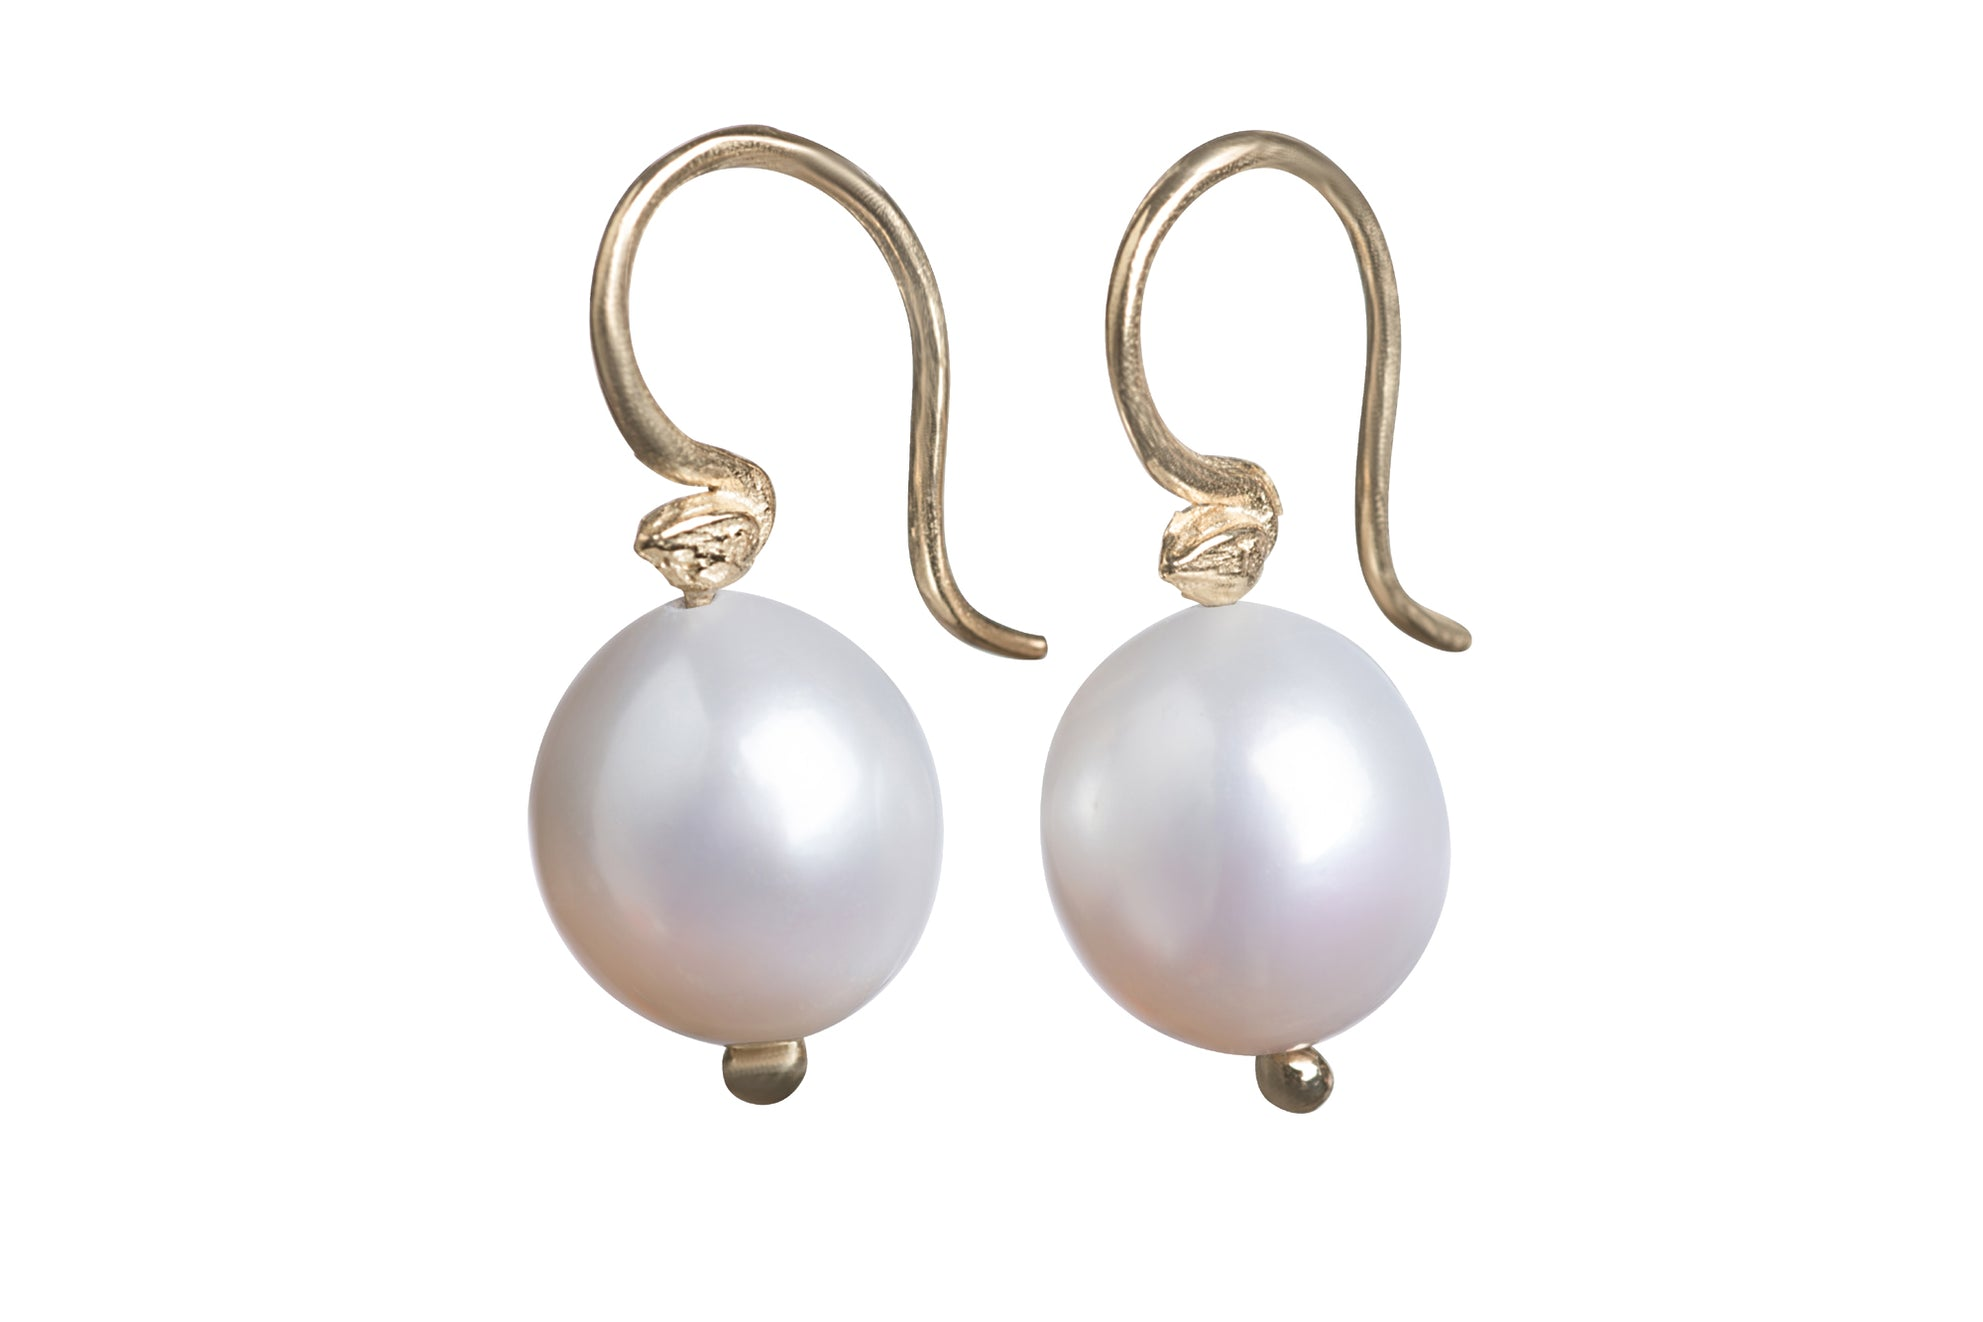 pearl wid product resmode pdpimgshortdescription tif in diamonds qlt sharpen cultured gold comp single layer shop with fpx earrings akoya usm white op stud